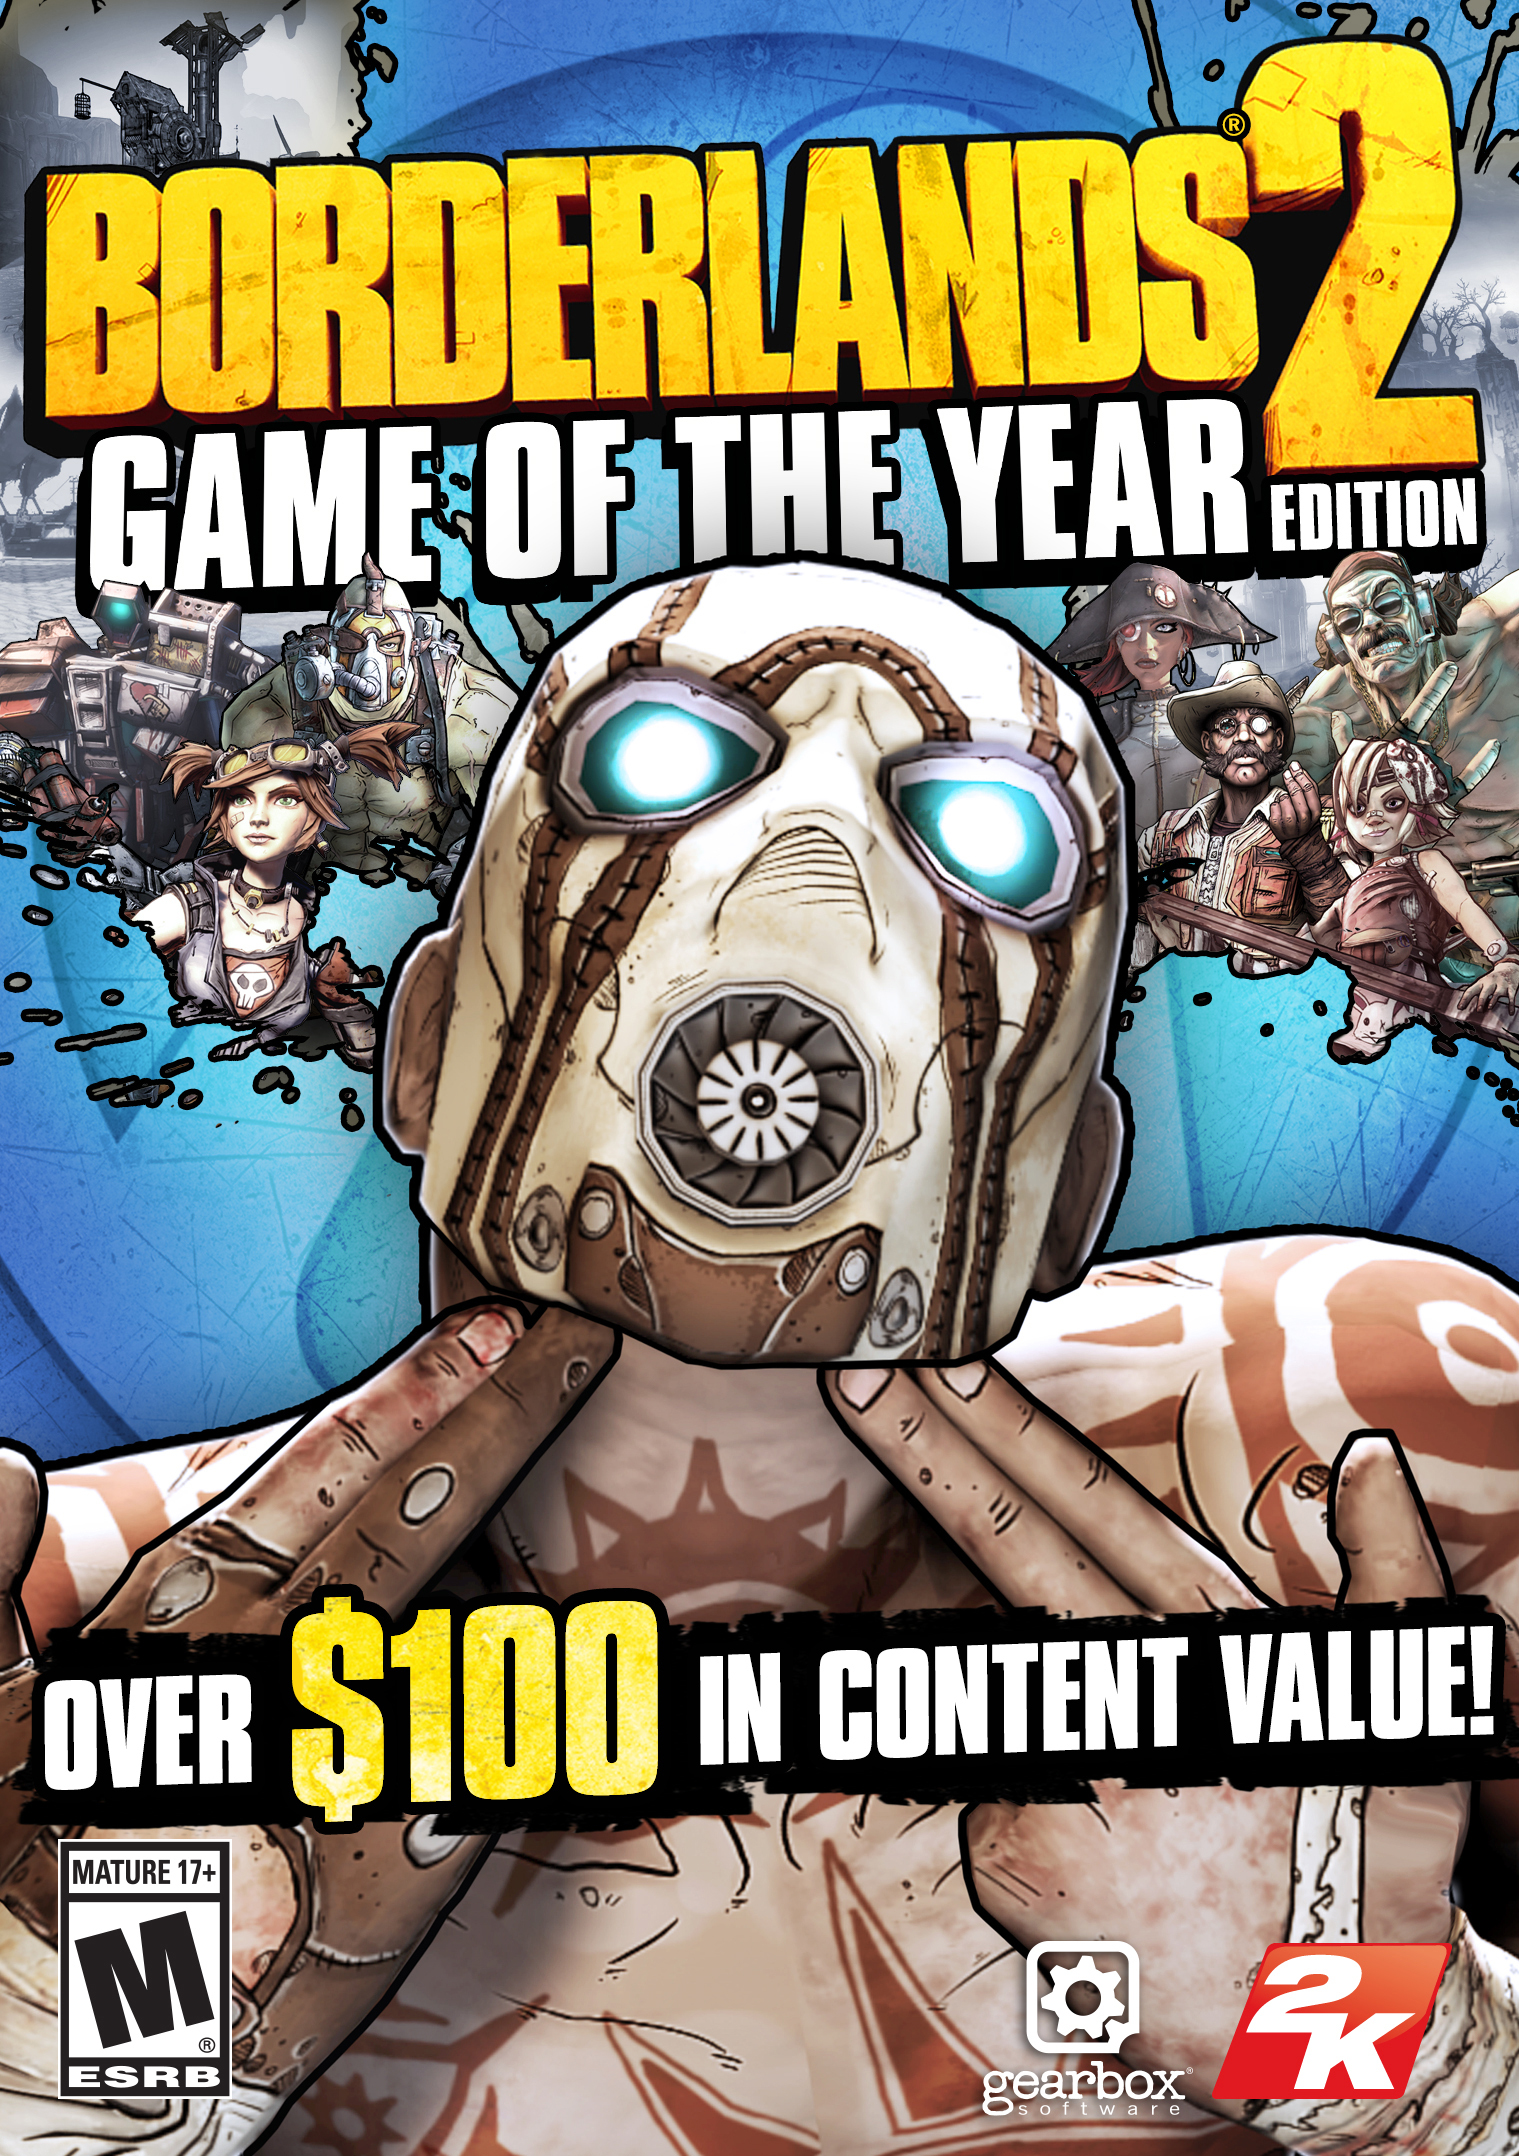 Borderlands 2 Game Of The Year Edition Now Available Business Wire